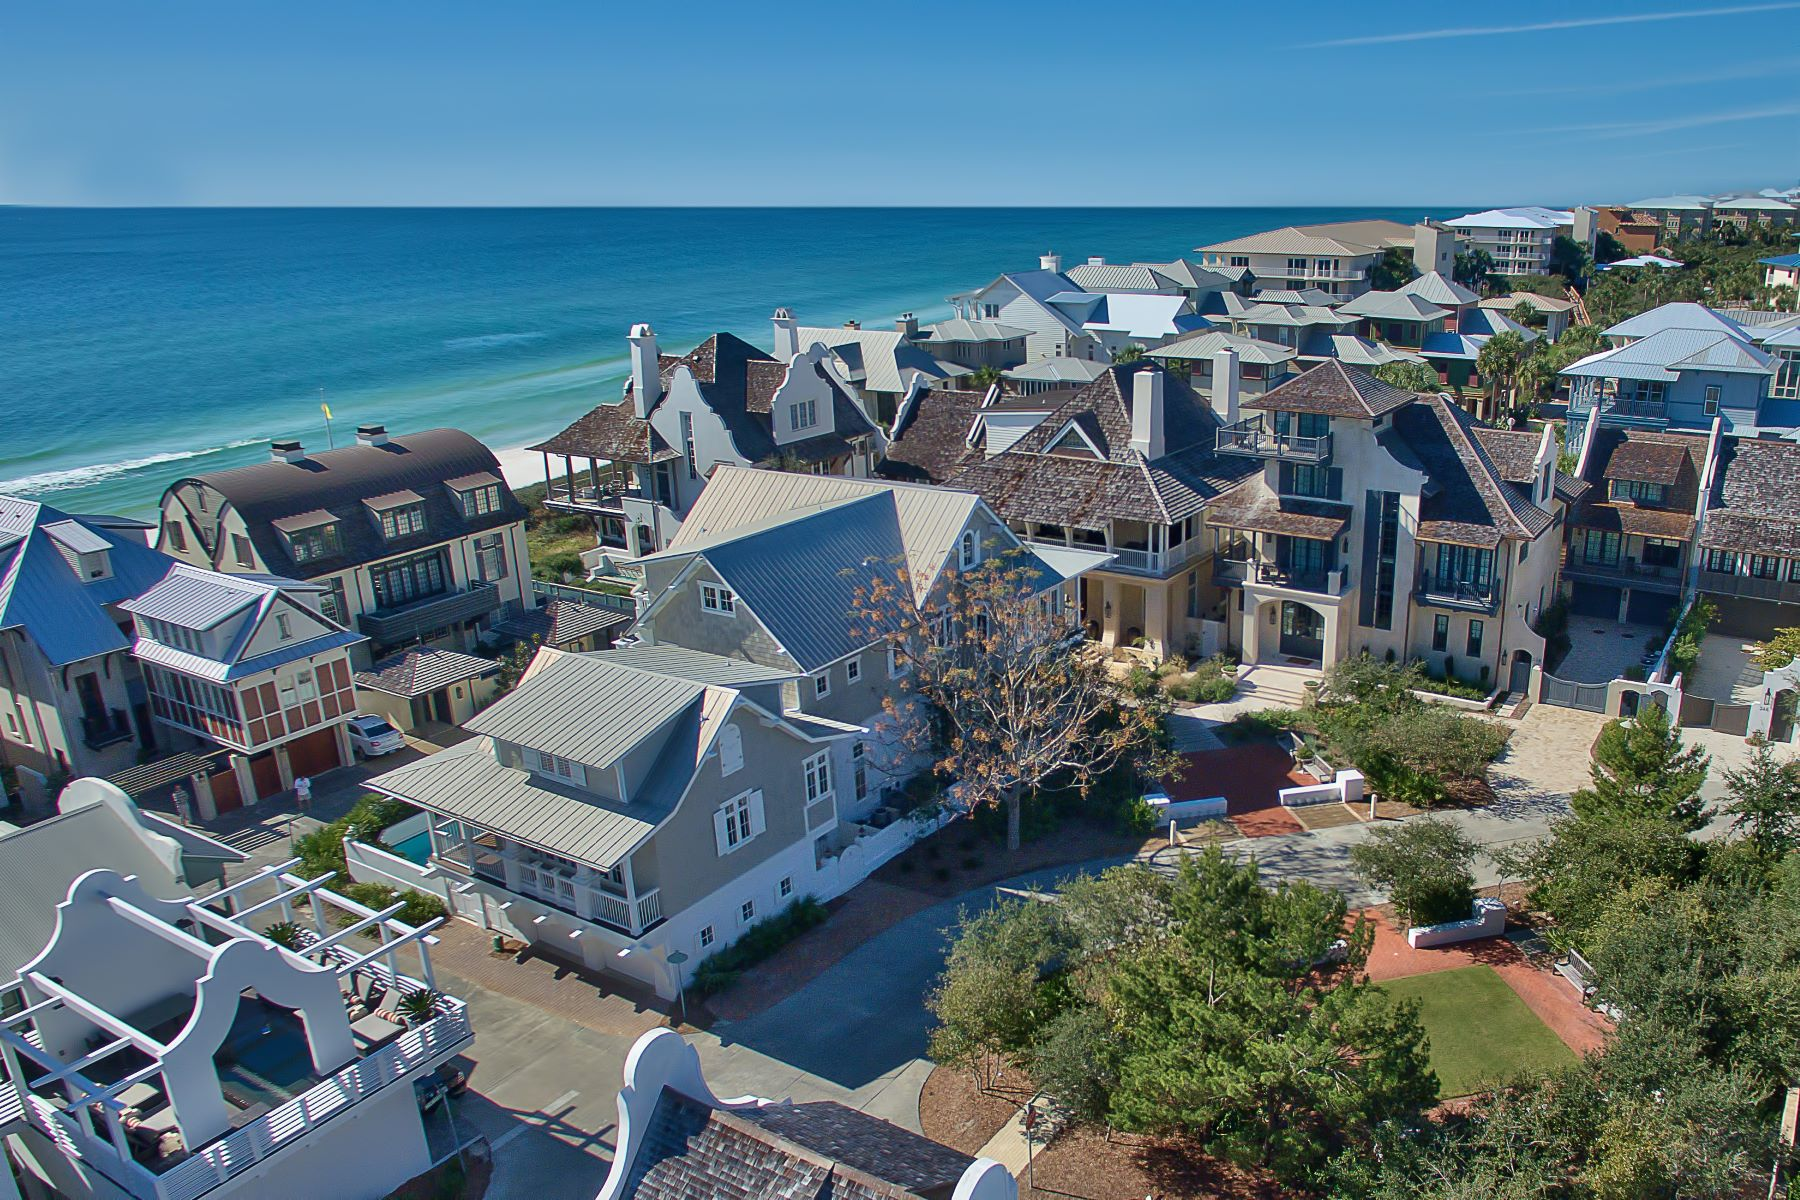 Single Family Homes for Sale at Double Lot Compound in Rosemary Beach 12 South Spanish Town Lane Rosemary Beach, Florida 32461 United States